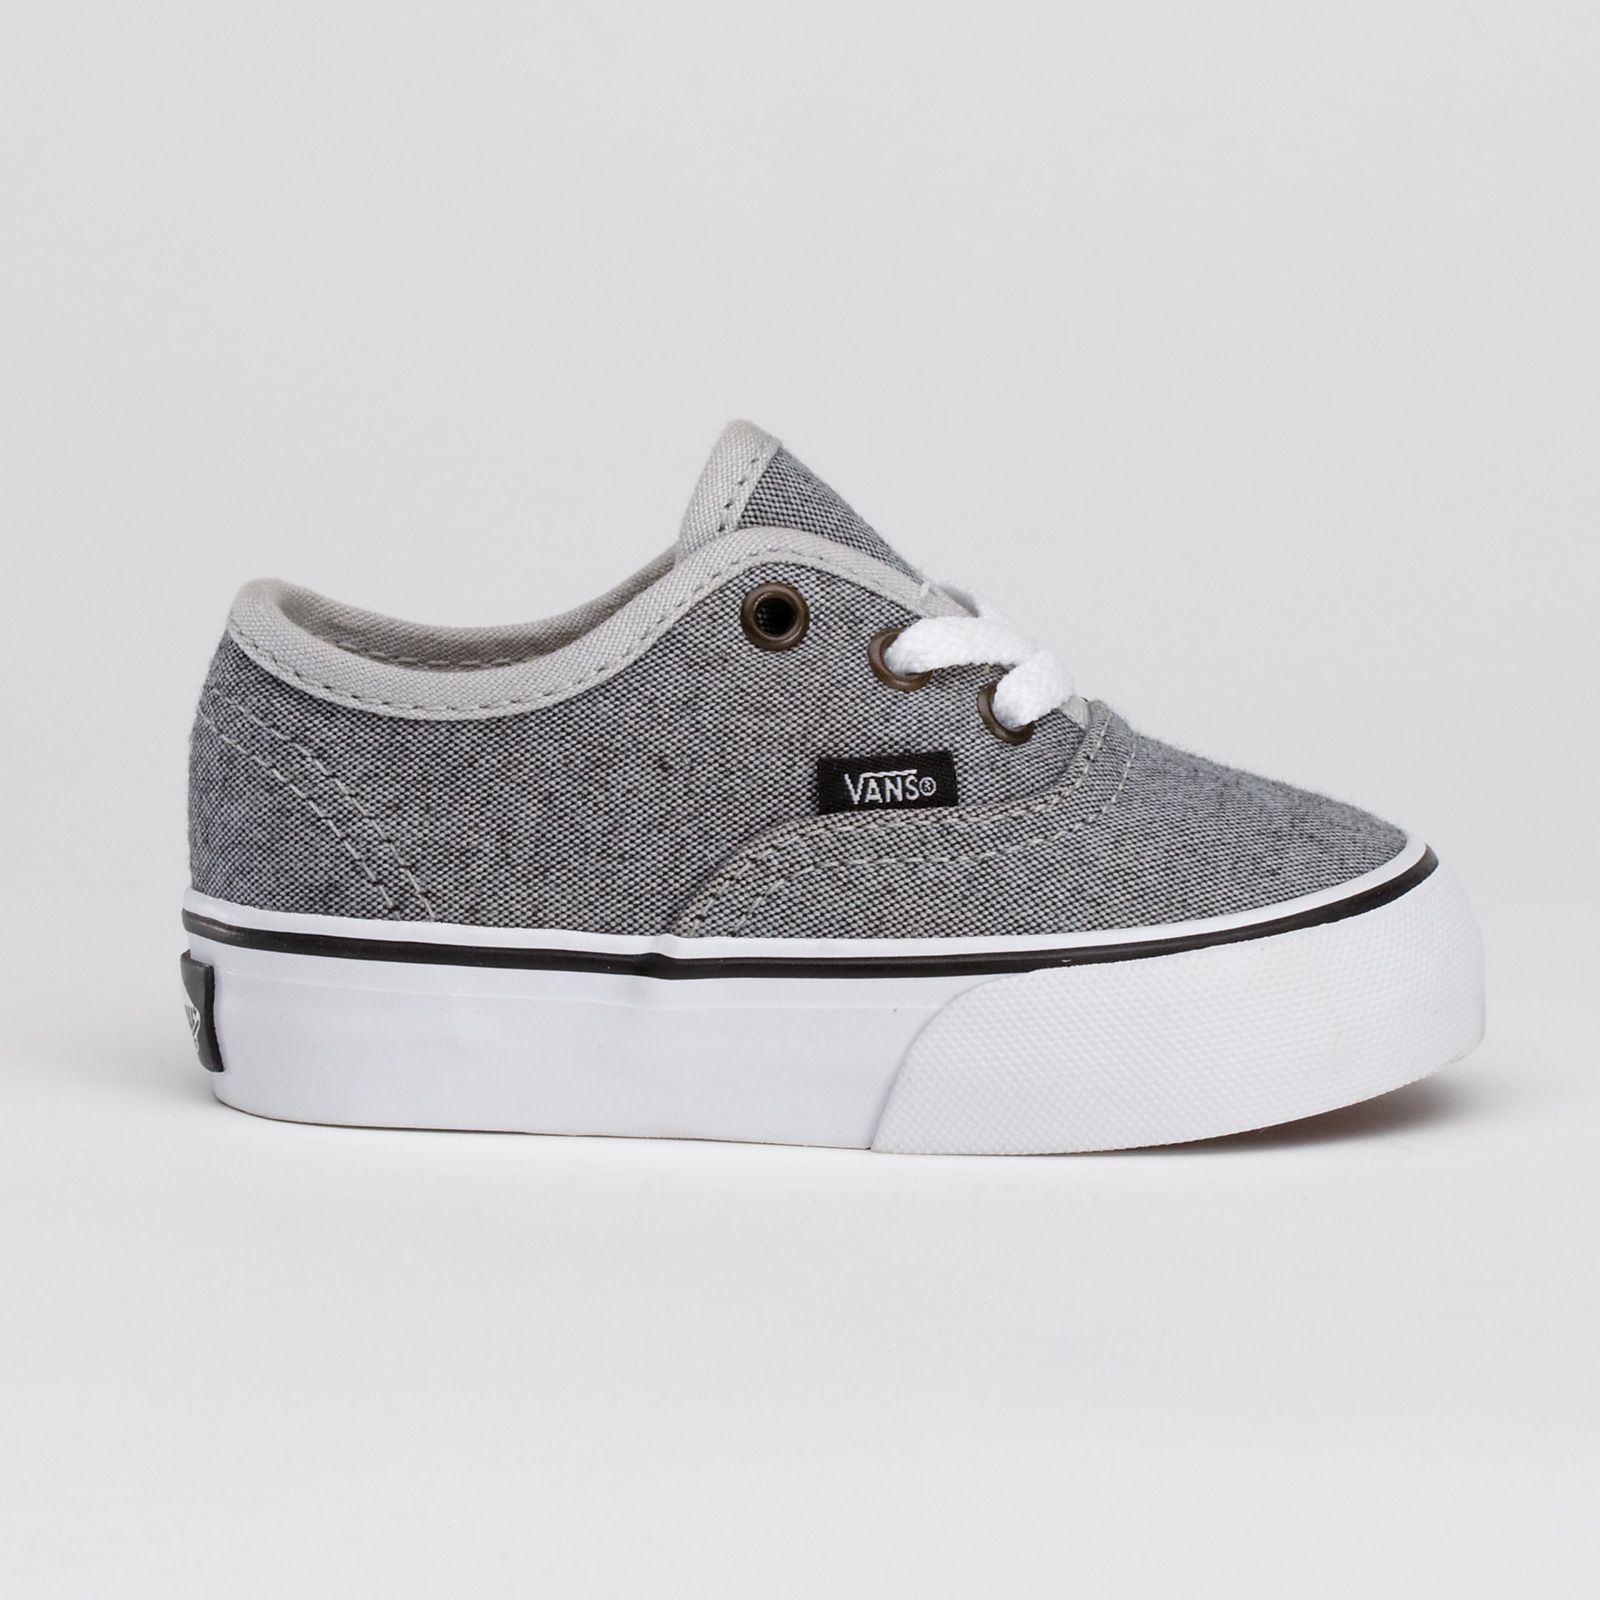 5afcbde27c BABY VANS- baby James would match his daddy in these gray vans 😍